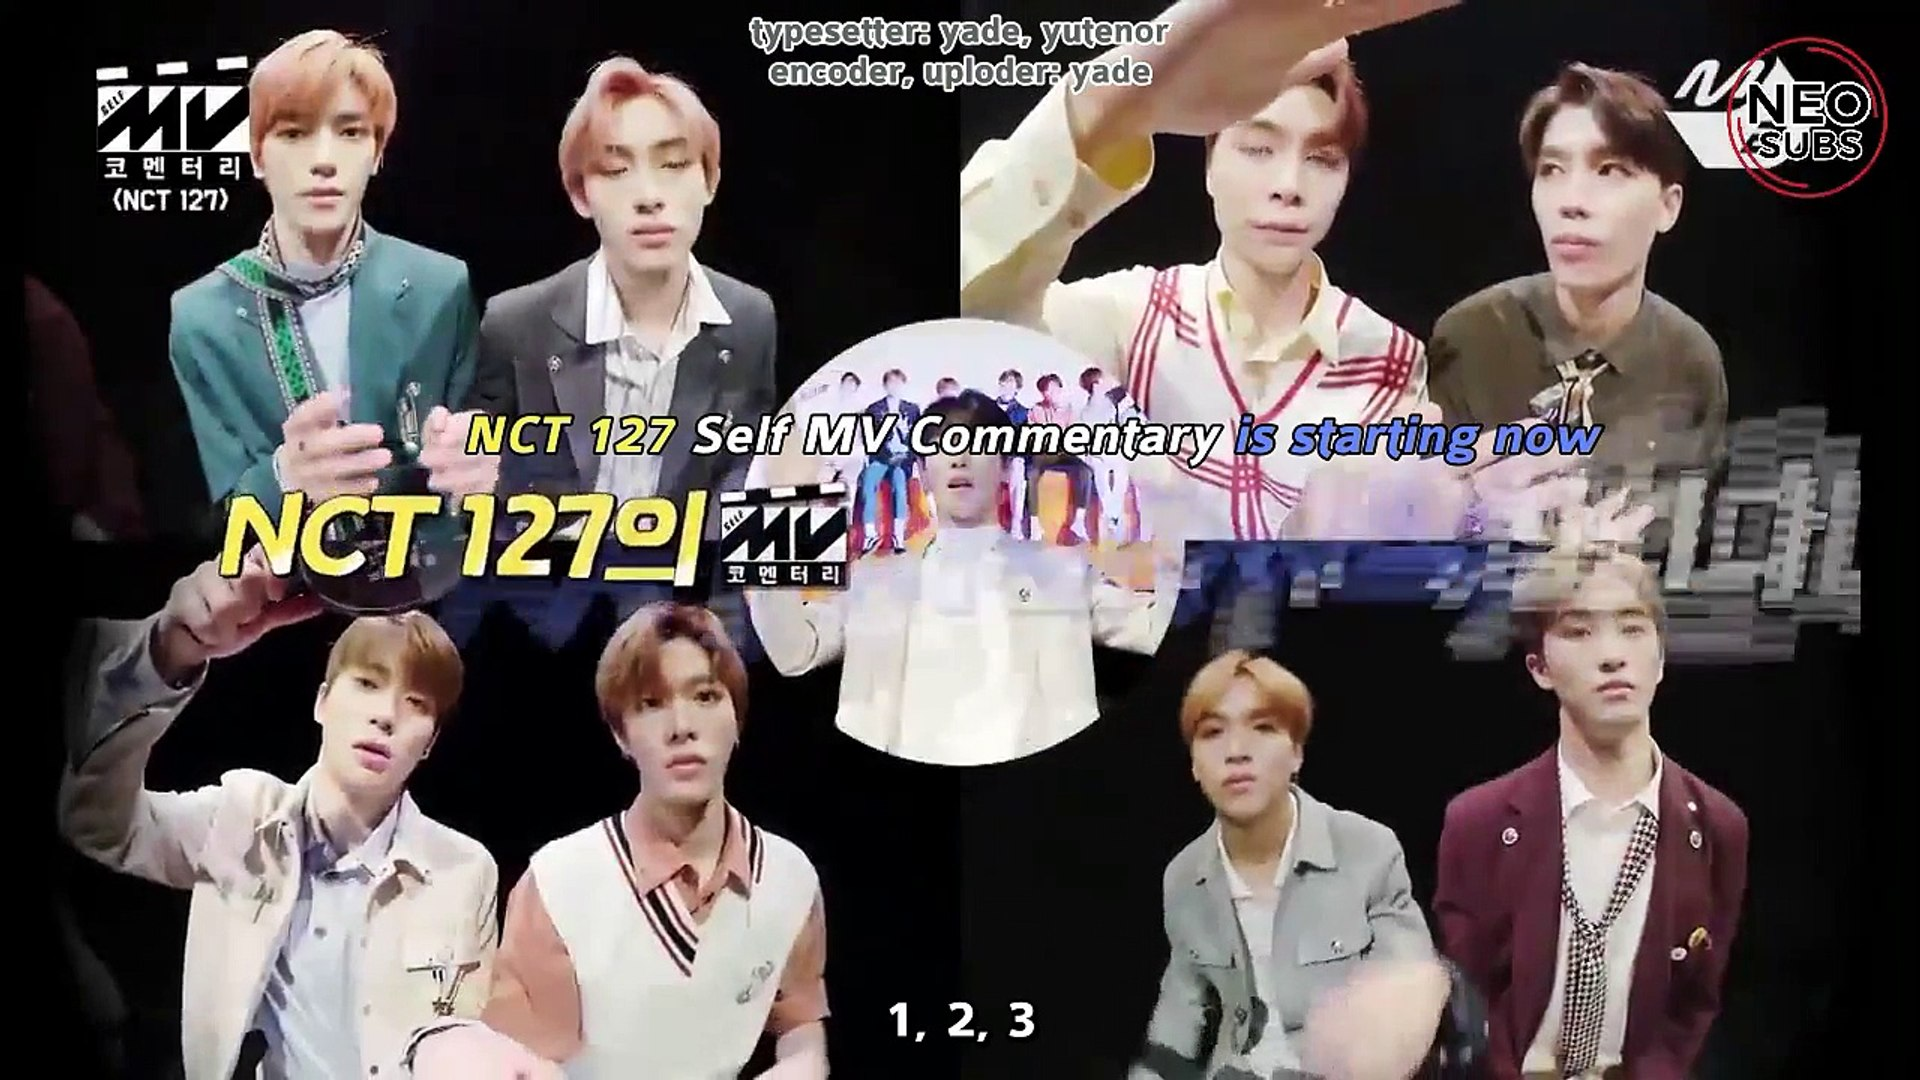 [NEOSUBS] 180323 MV Commentary With NCT 127